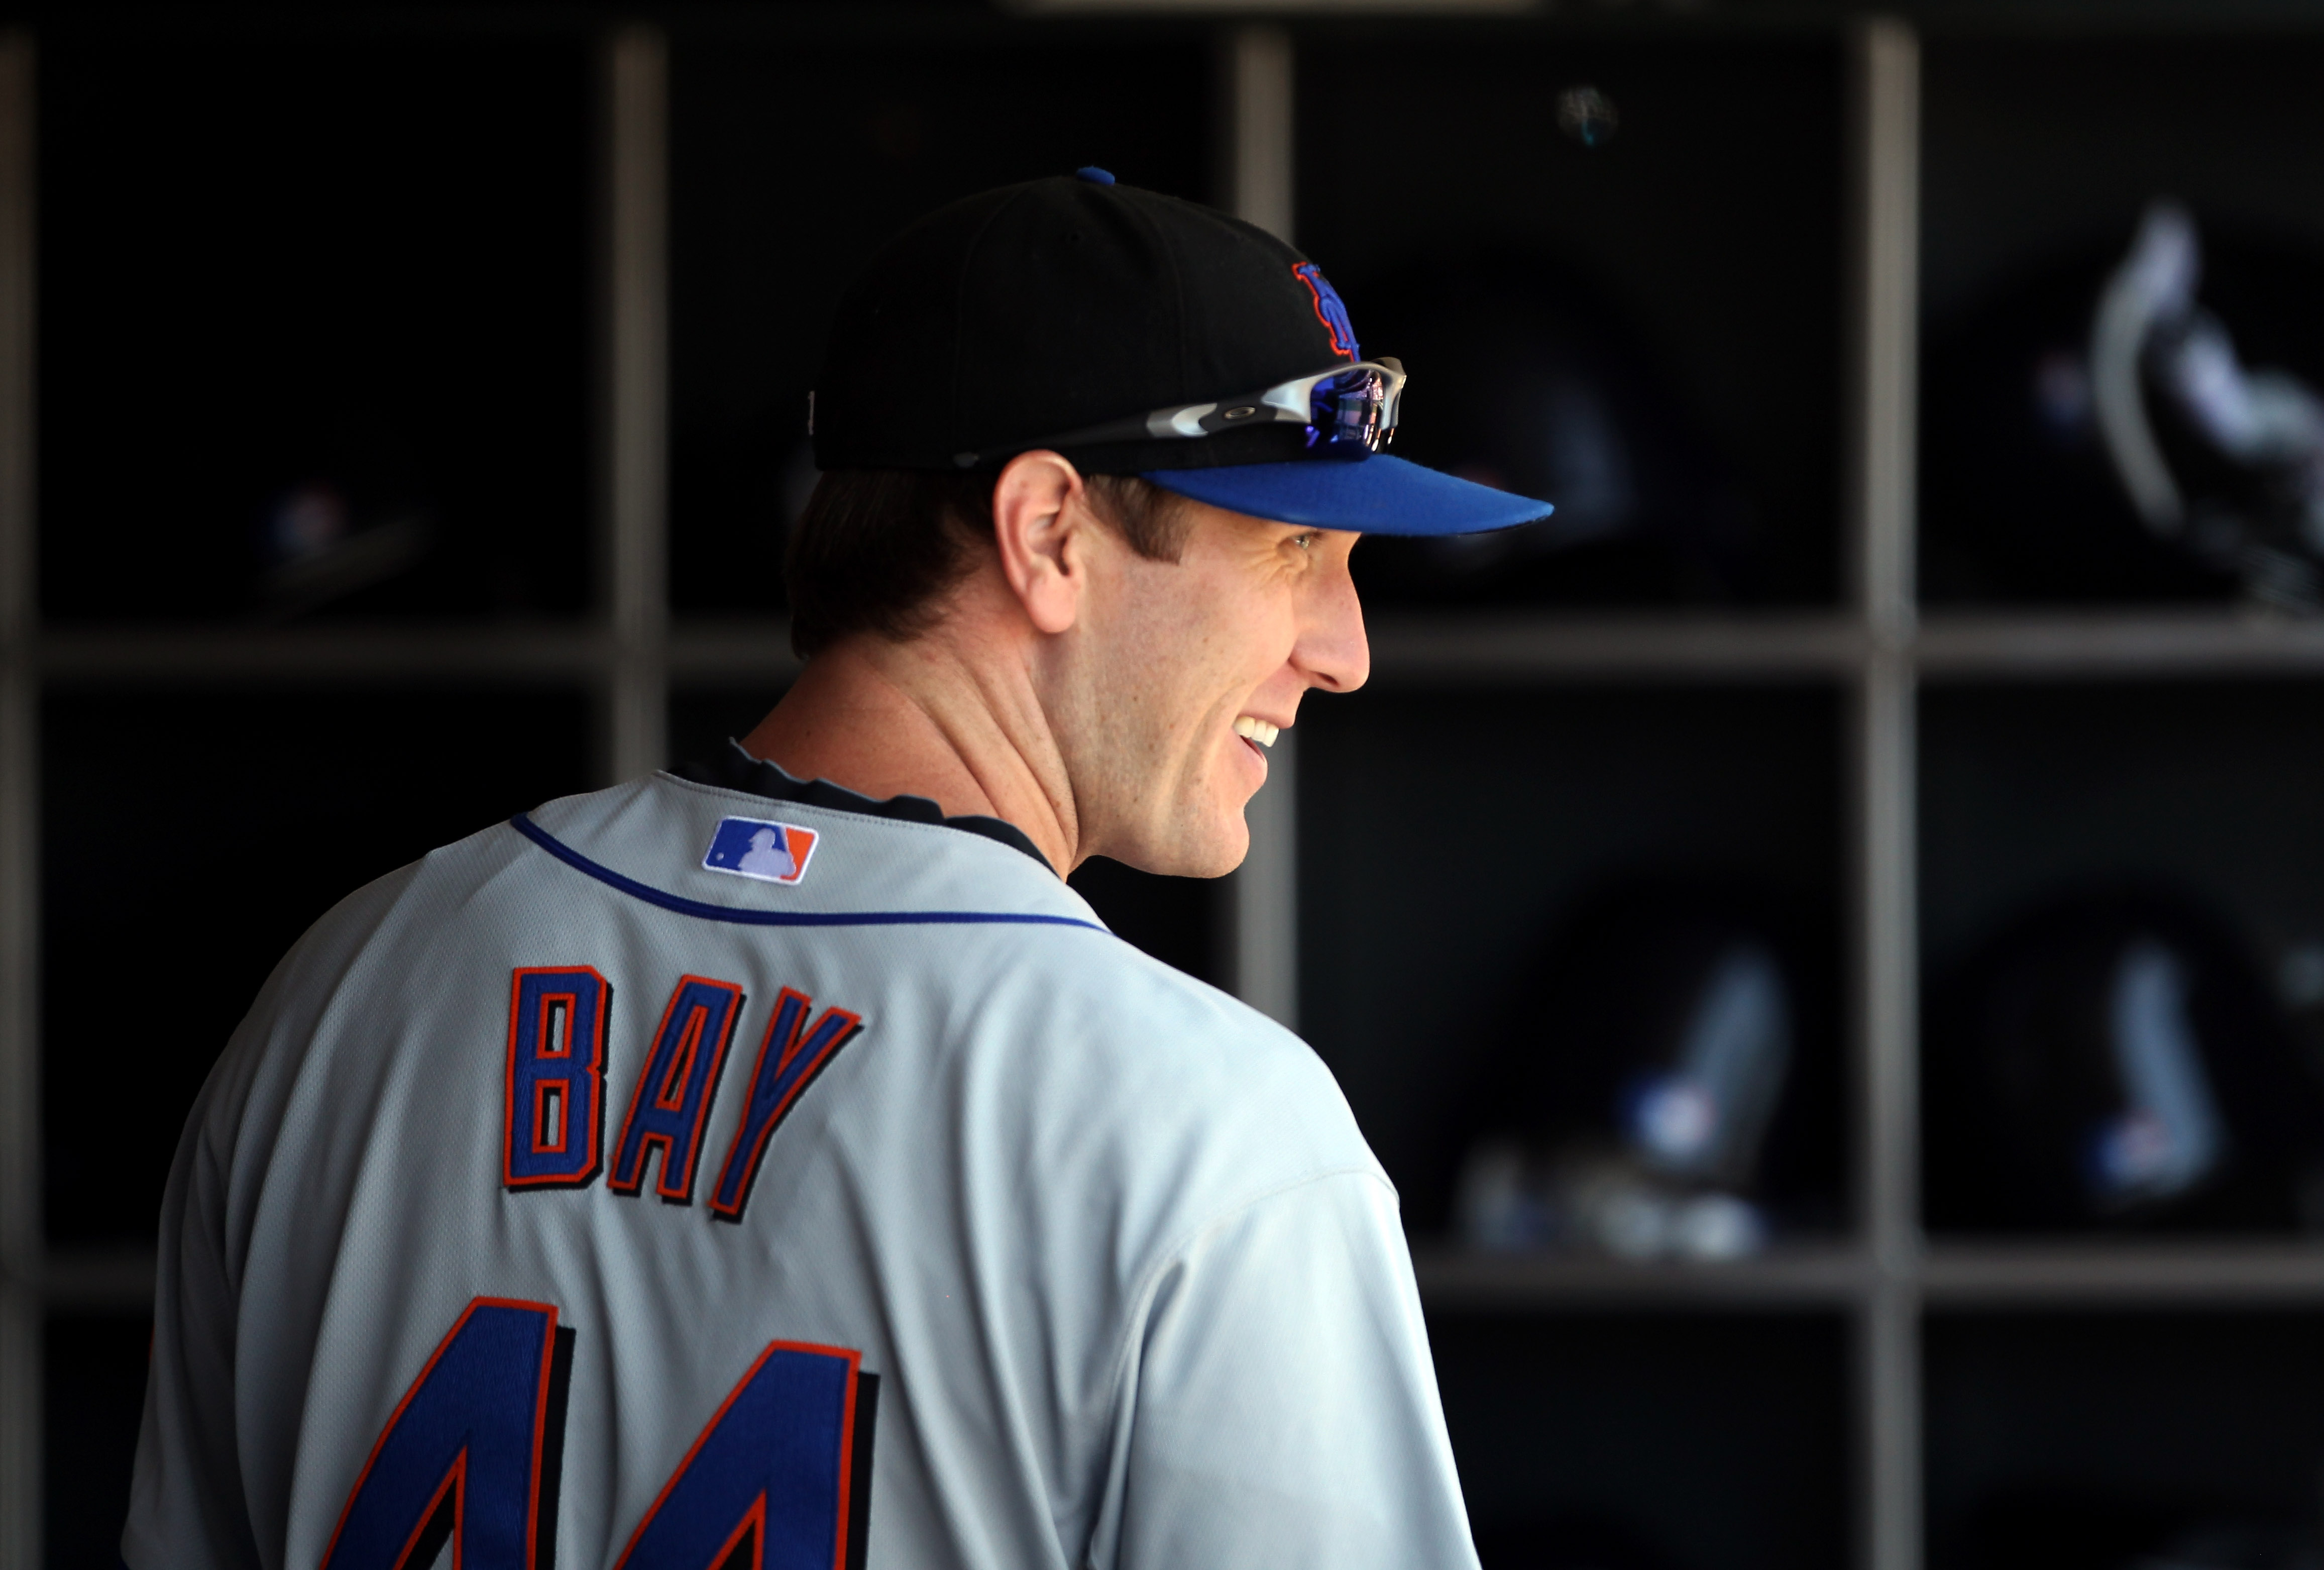 SAN FRANCISCO - JULY 18:  Jason Bay #44 of the New York Mets stands in the dugout before their game against the San Francisco Giants at AT&T Park on July 18, 2010 in San Francisco, California.  (Photo by Ezra Shaw/Getty Images)